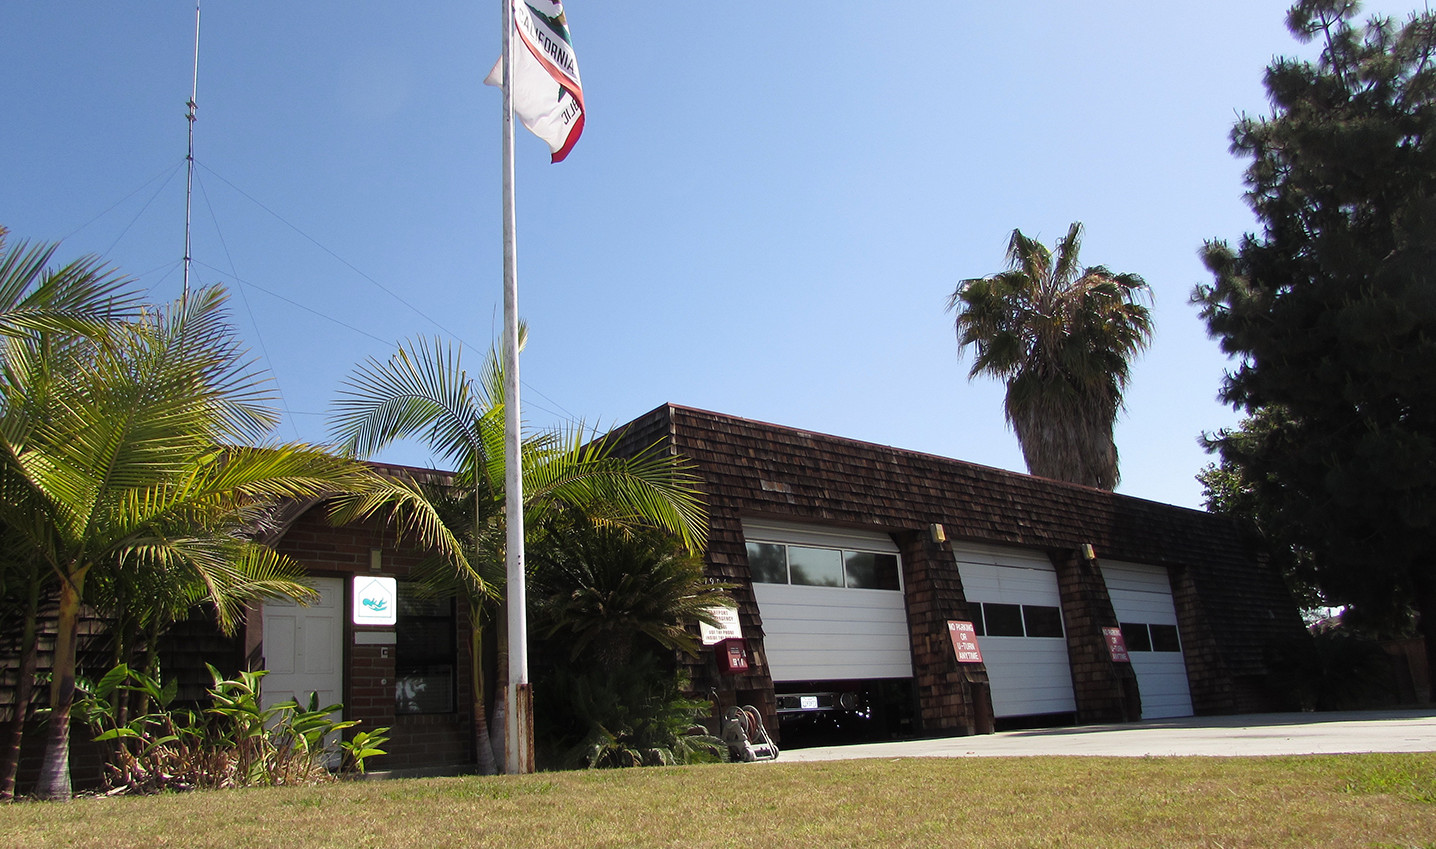 Fire station gets OK for renovations